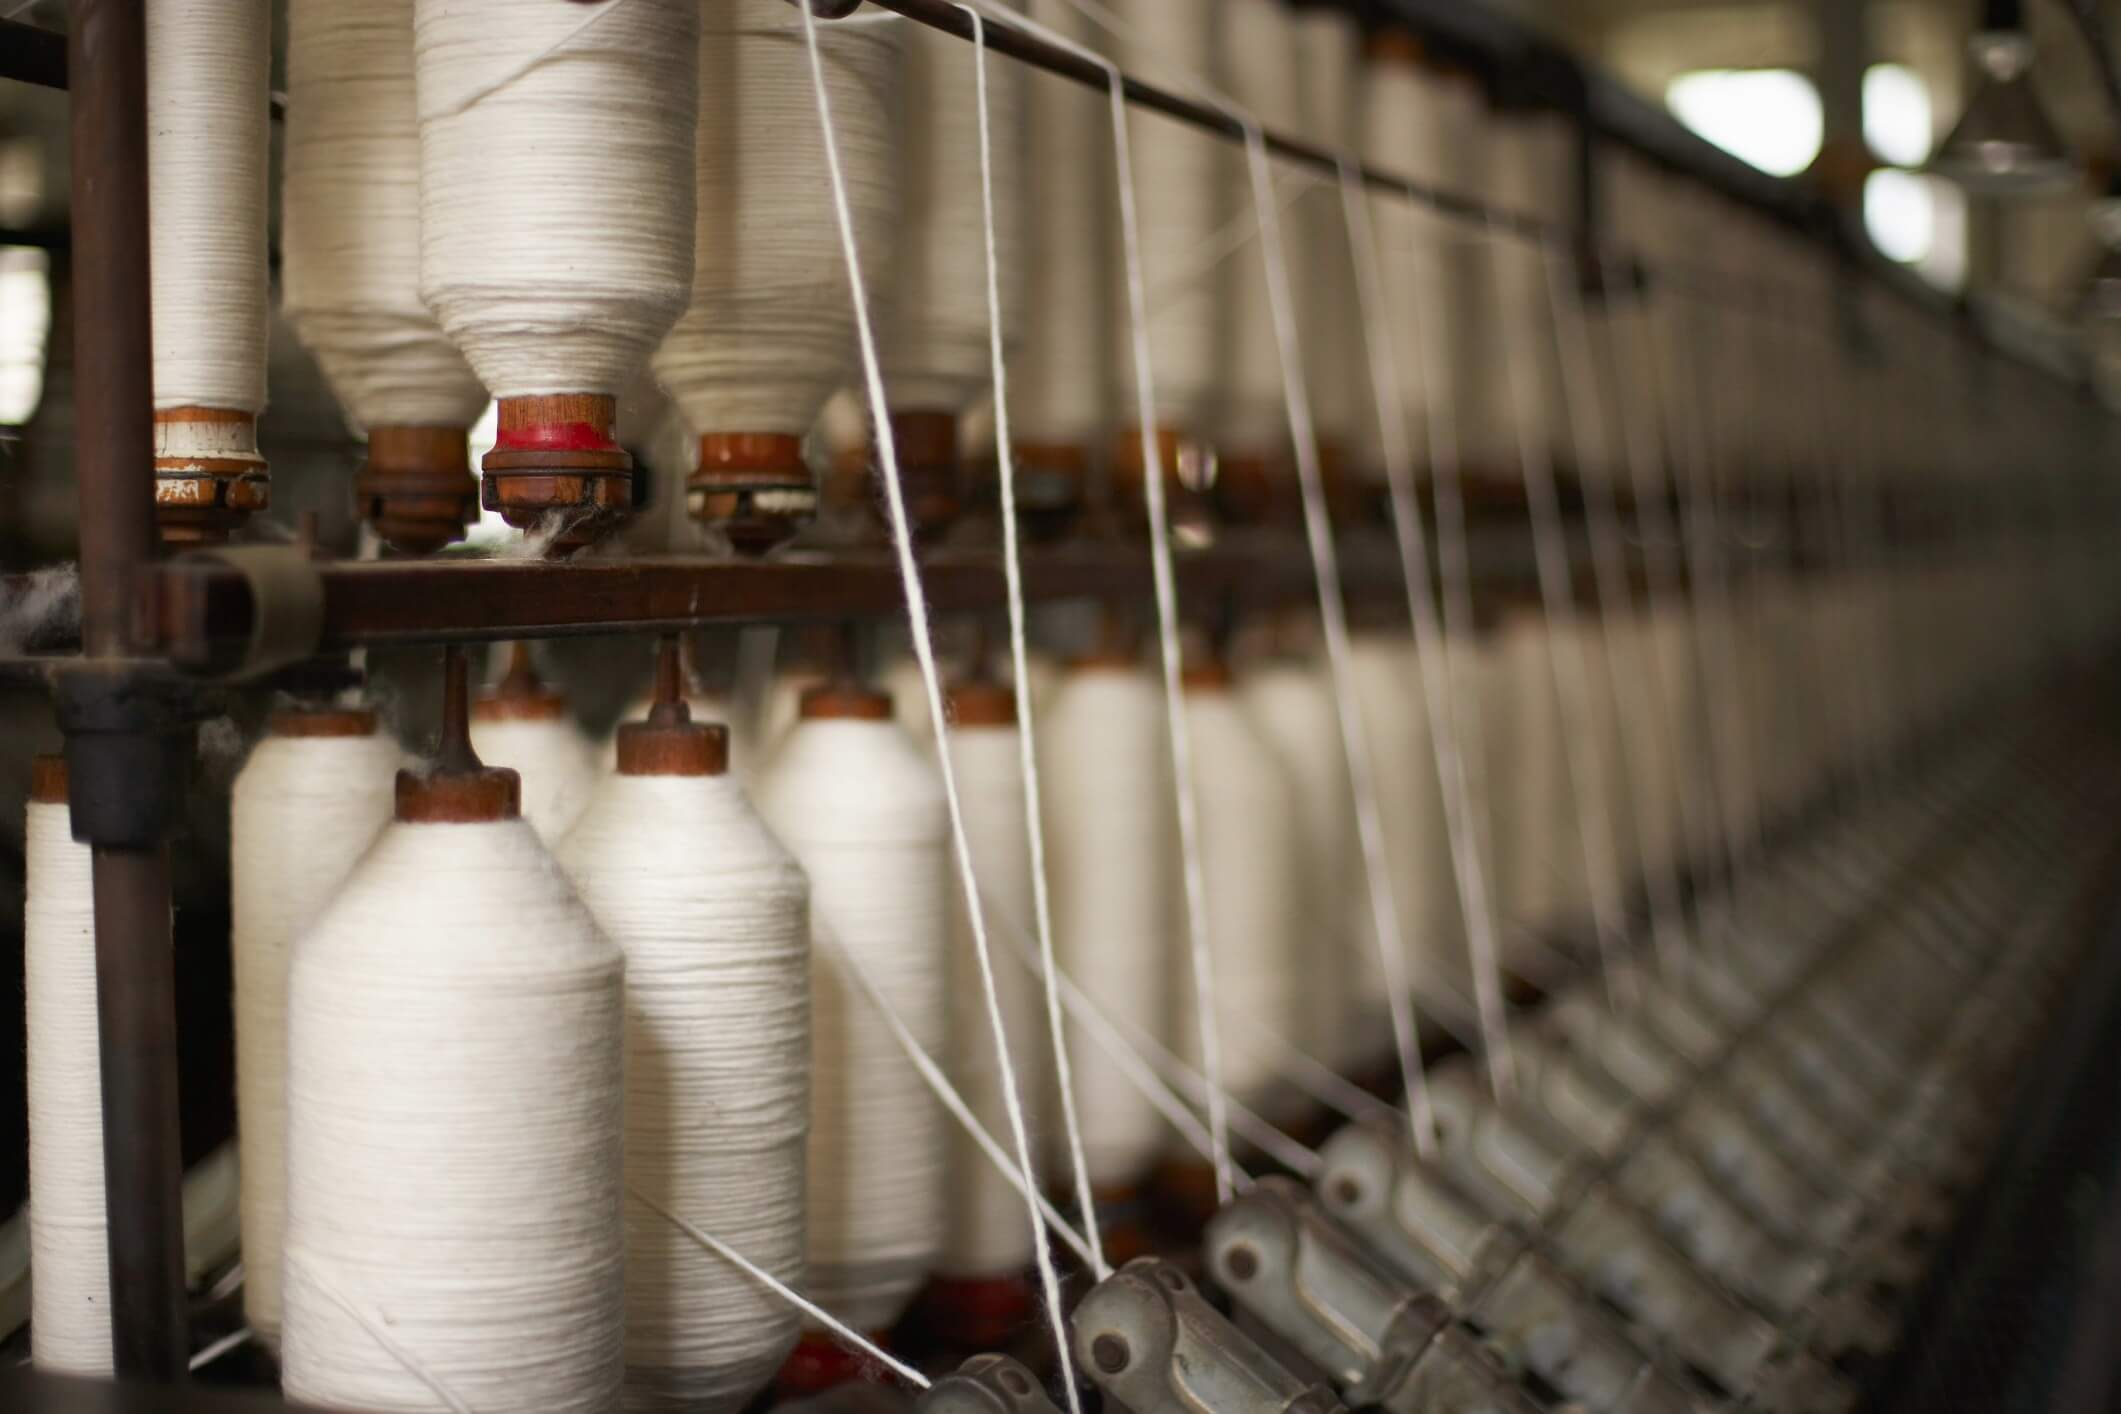 What Is An Ethical Garment?